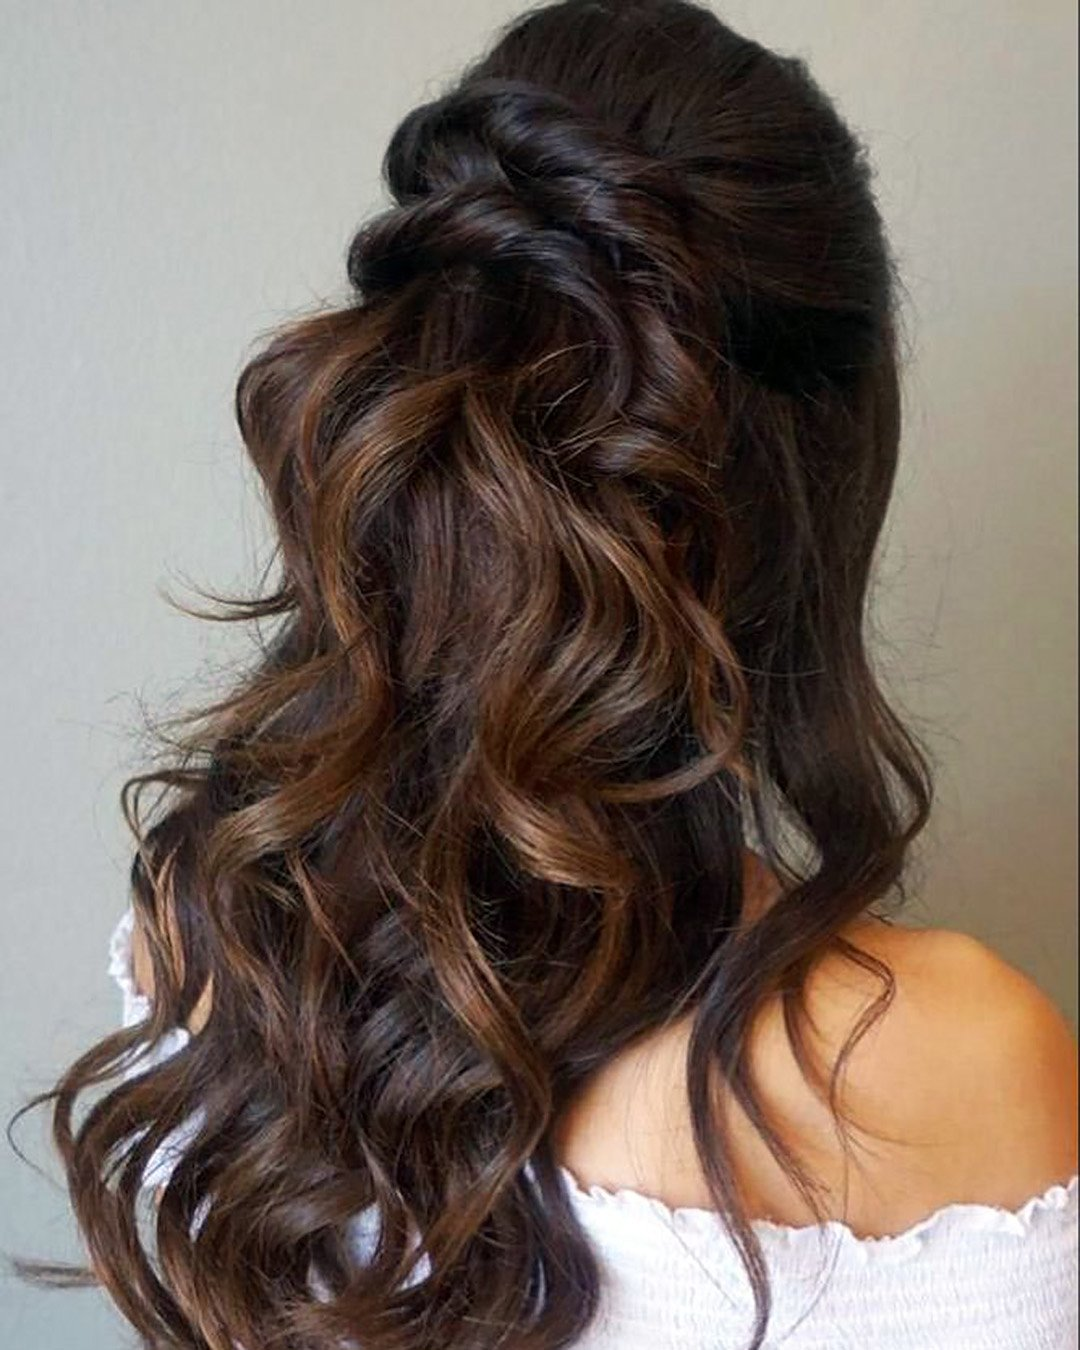 half up half down wedding hairstyles volume curly messy brown martinajagr